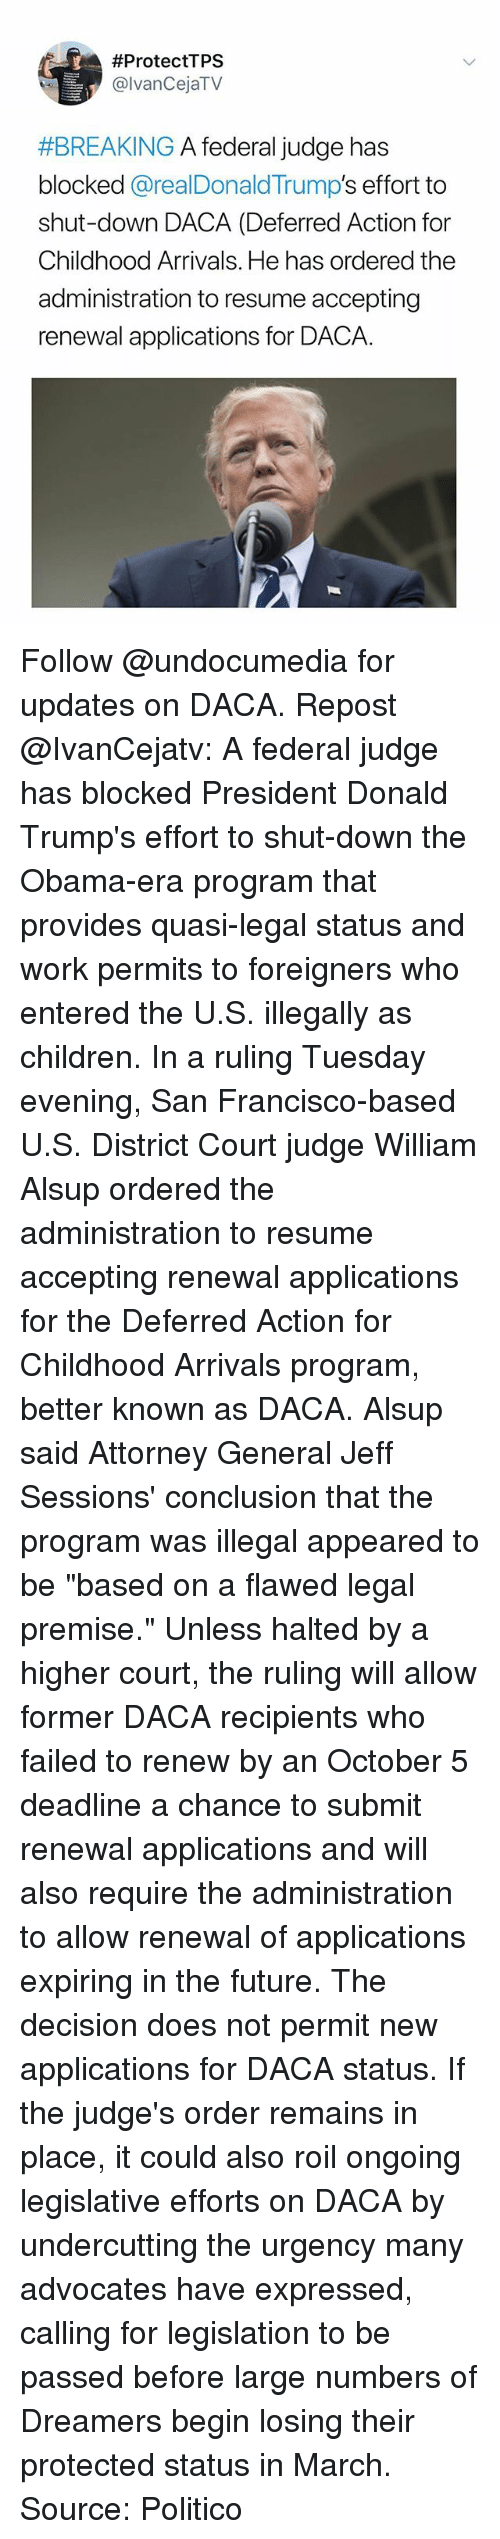 """jeff sessions:  #ProtectTPS  @lvanCejaTV  #BREAKING A federal Judge has  blocked @realDonaldTrump's effort to  shut-down DACA (Deferred Action for  Childhood Arrivals. He has ordered the  administration to resume accepting  renewal applications for DACA. Follow @undocumedia for updates on DACA. Repost @IvanCejatv: A federal judge has blocked President Donald Trump's effort to shut-down the Obama-era program that provides quasi-legal status and work permits to foreigners who entered the U.S. illegally as children. In a ruling Tuesday evening, San Francisco-based U.S. District Court judge William Alsup ordered the administration to resume accepting renewal applications for the Deferred Action for Childhood Arrivals program, better known as DACA. Alsup said Attorney General Jeff Sessions' conclusion that the program was illegal appeared to be """"based on a flawed legal premise."""" Unless halted by a higher court, the ruling will allow former DACA recipients who failed to renew by an October 5 deadline a chance to submit renewal applications and will also require the administration to allow renewal of applications expiring in the future. The decision does not permit new applications for DACA status. If the judge's order remains in place, it could also roil ongoing legislative efforts on DACA by undercutting the urgency many advocates have expressed, calling for legislation to be passed before large numbers of Dreamers begin losing their protected status in March. Source: Politico"""